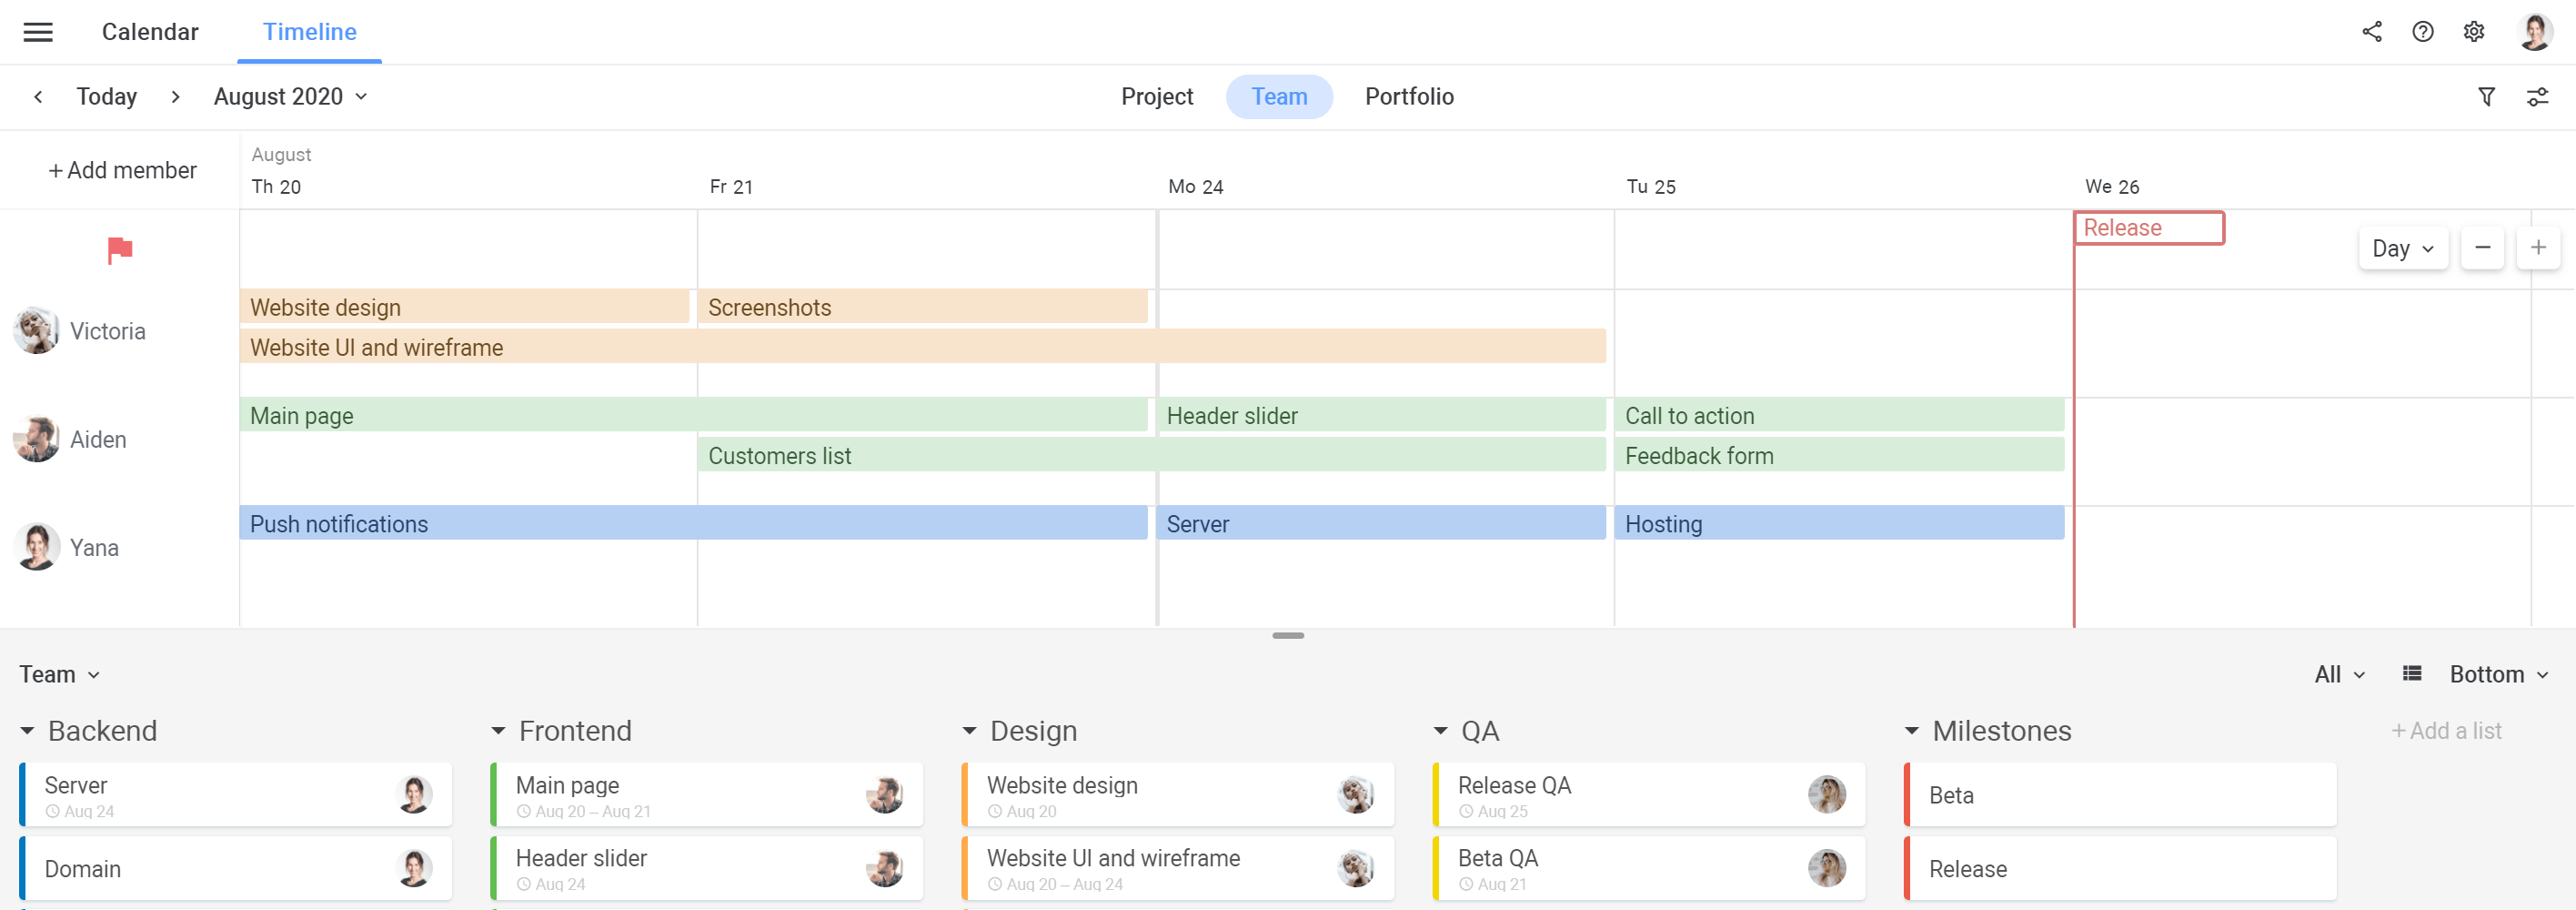 Planyway Getting Started Team Timeline